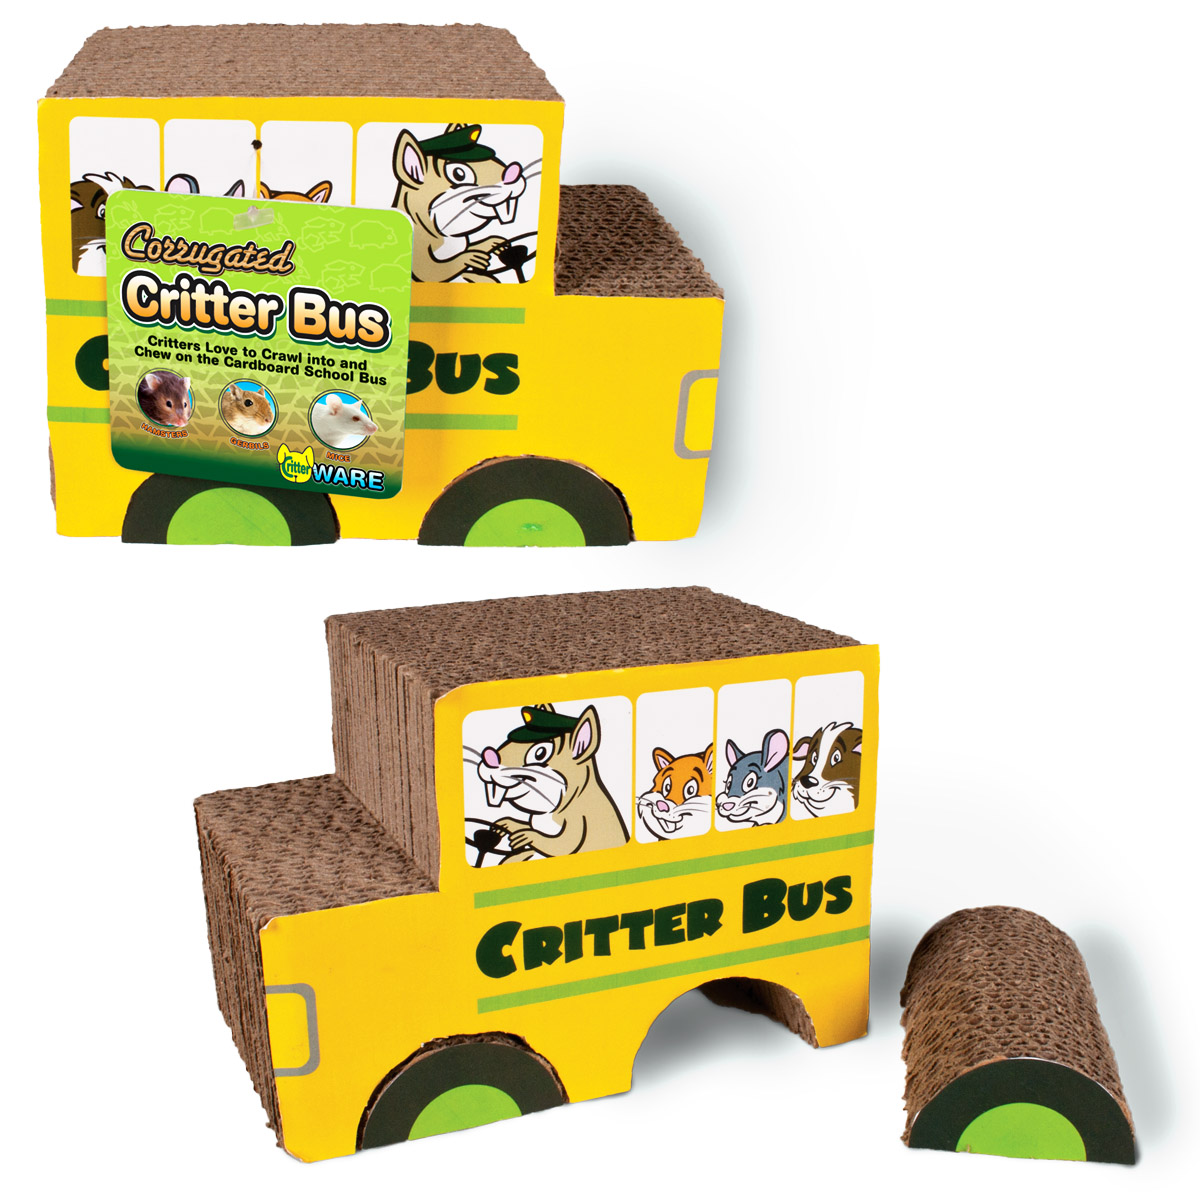 Corrugated Critter Bus